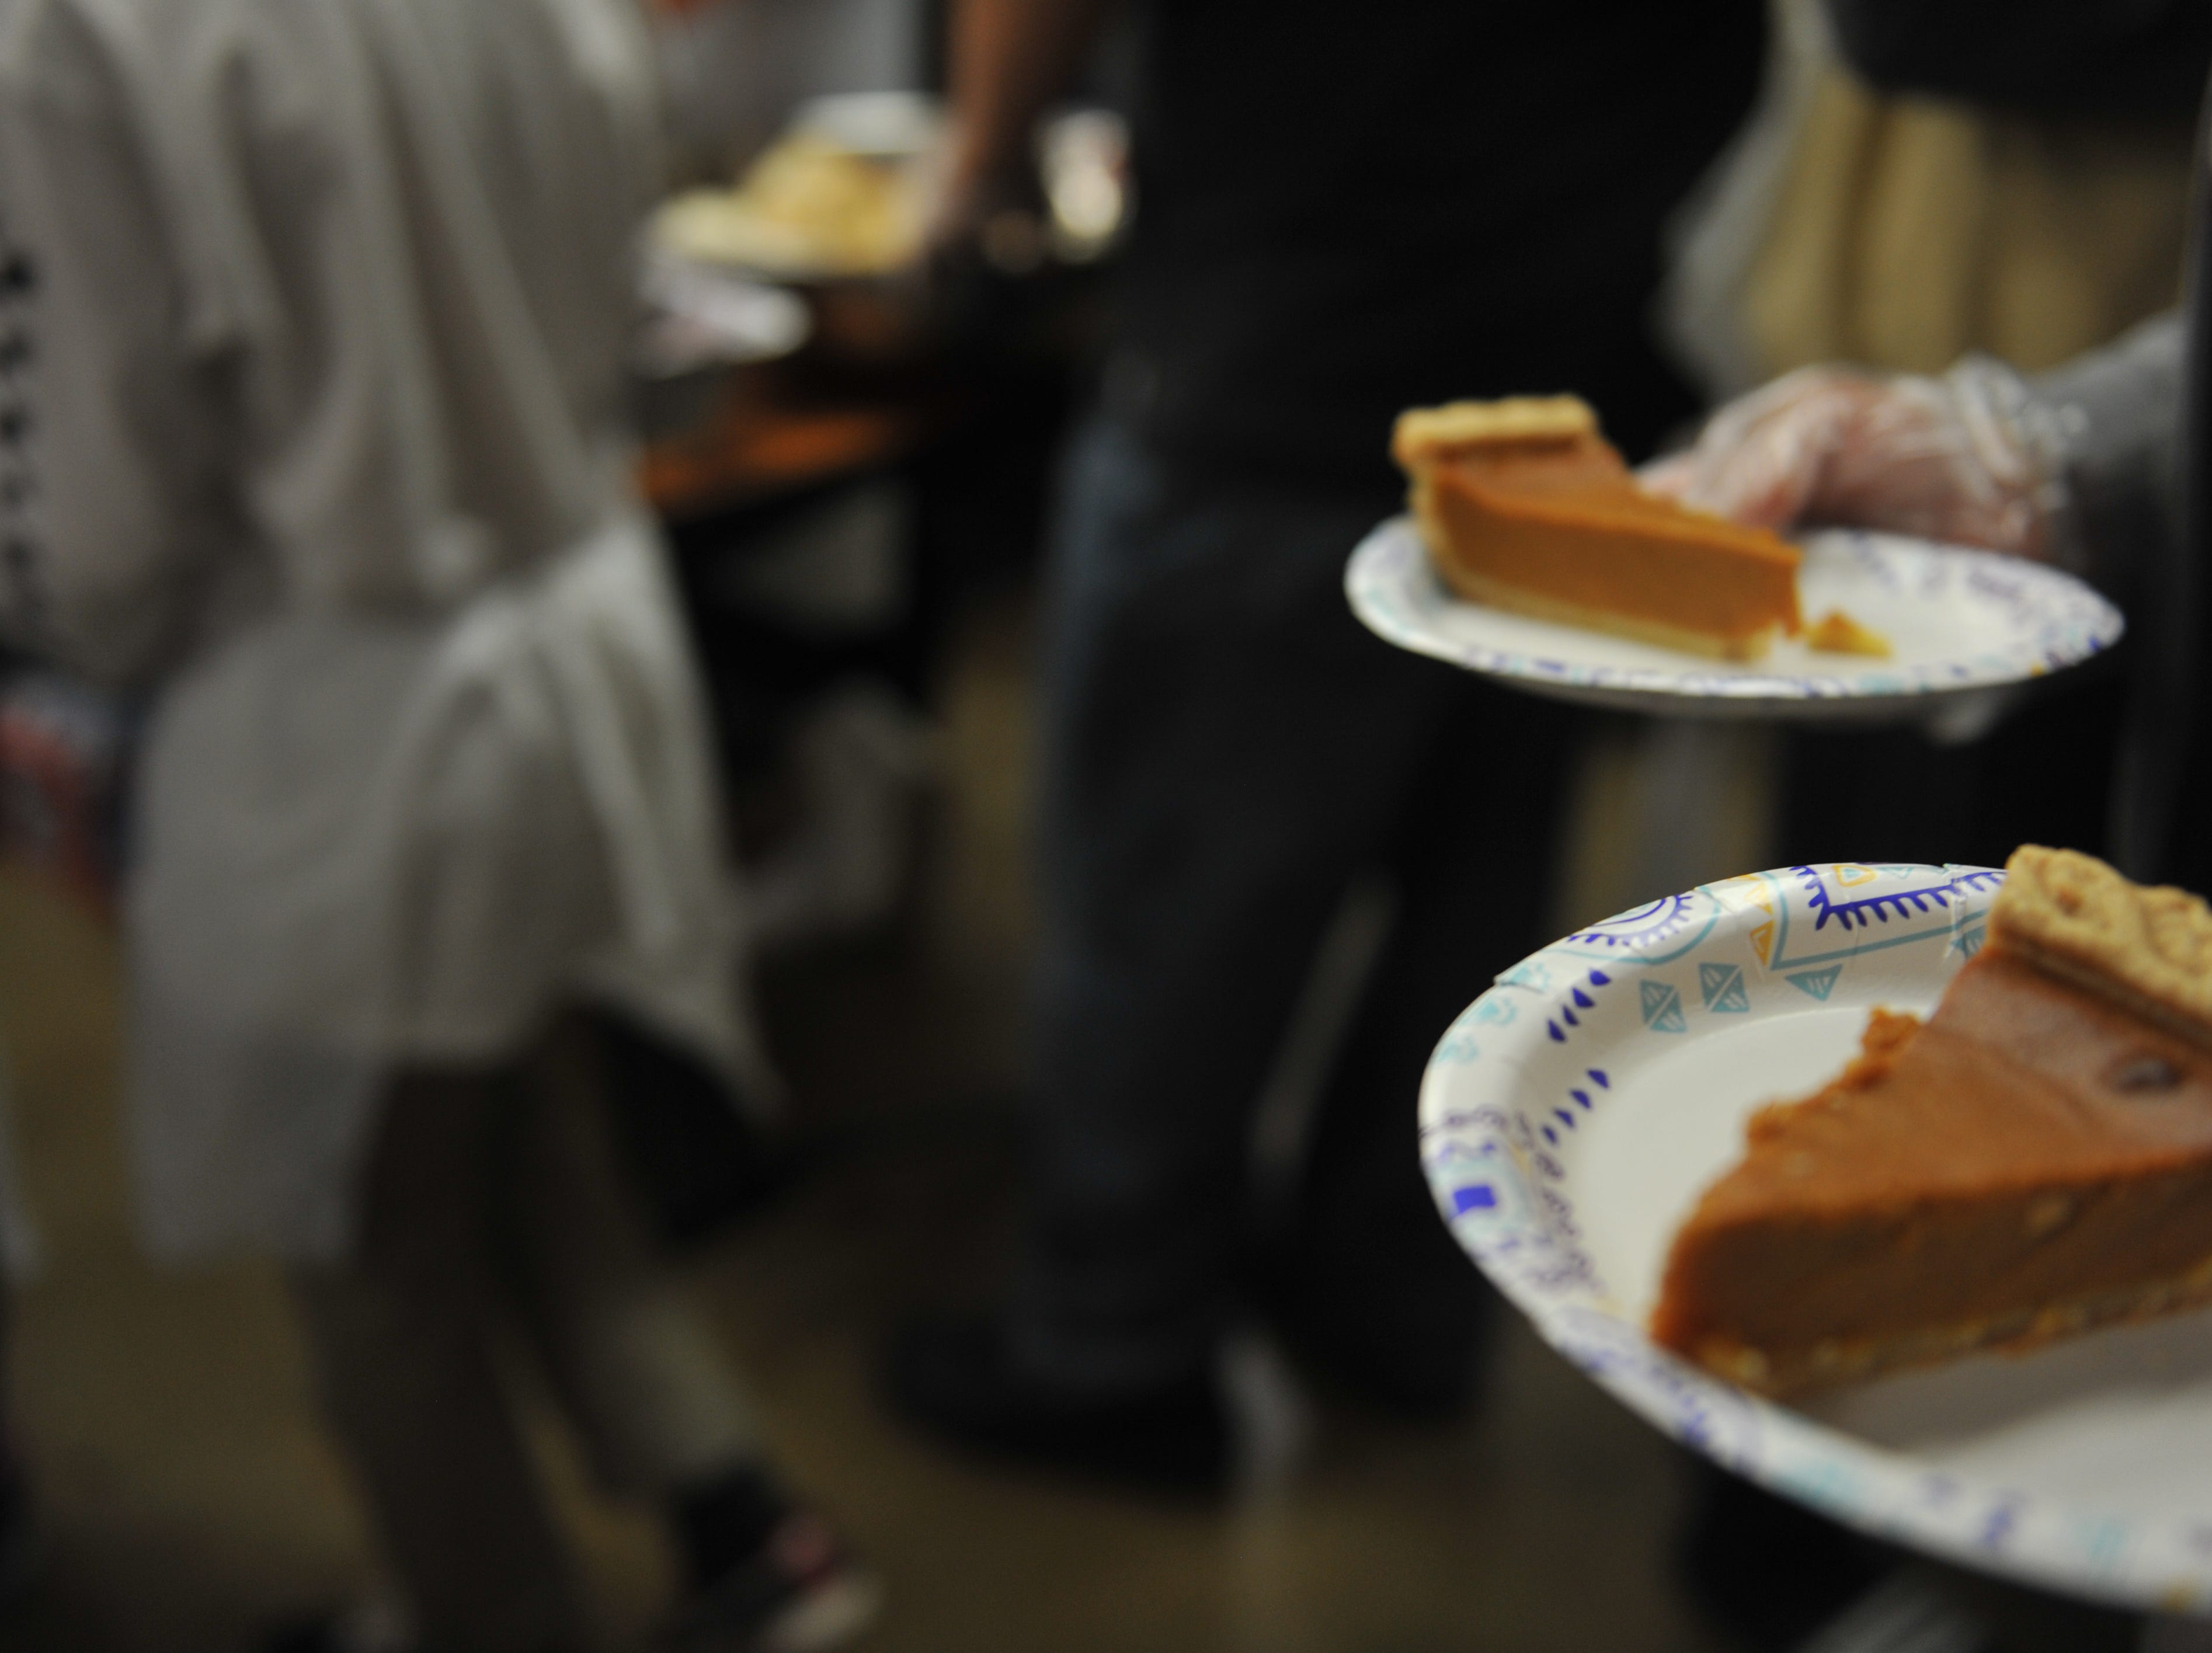 A volunteer serves pumpkin pie at OMNI's Christmas lunch.